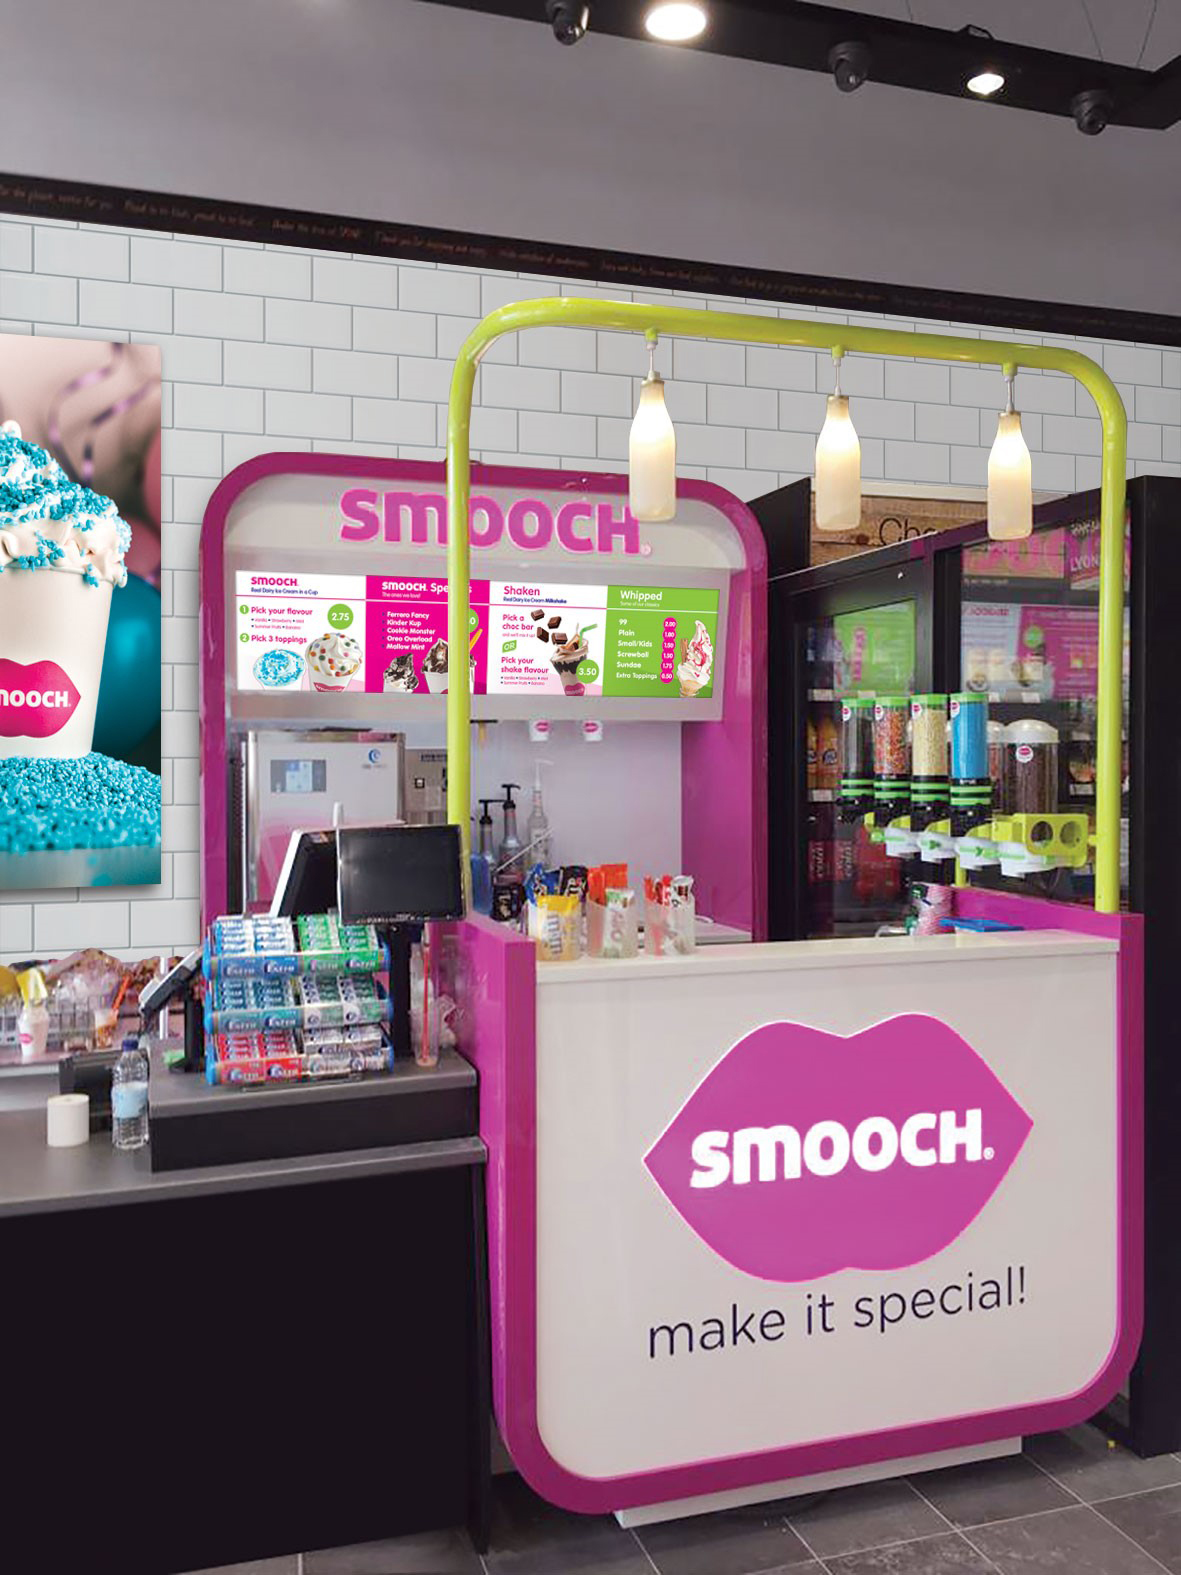 Smooch's new Ice Cream Parlour stand due in retail outlets around Ireland during the summer 2019. For information please contact  Mari O'Leary 016789888 - O'Leary PR